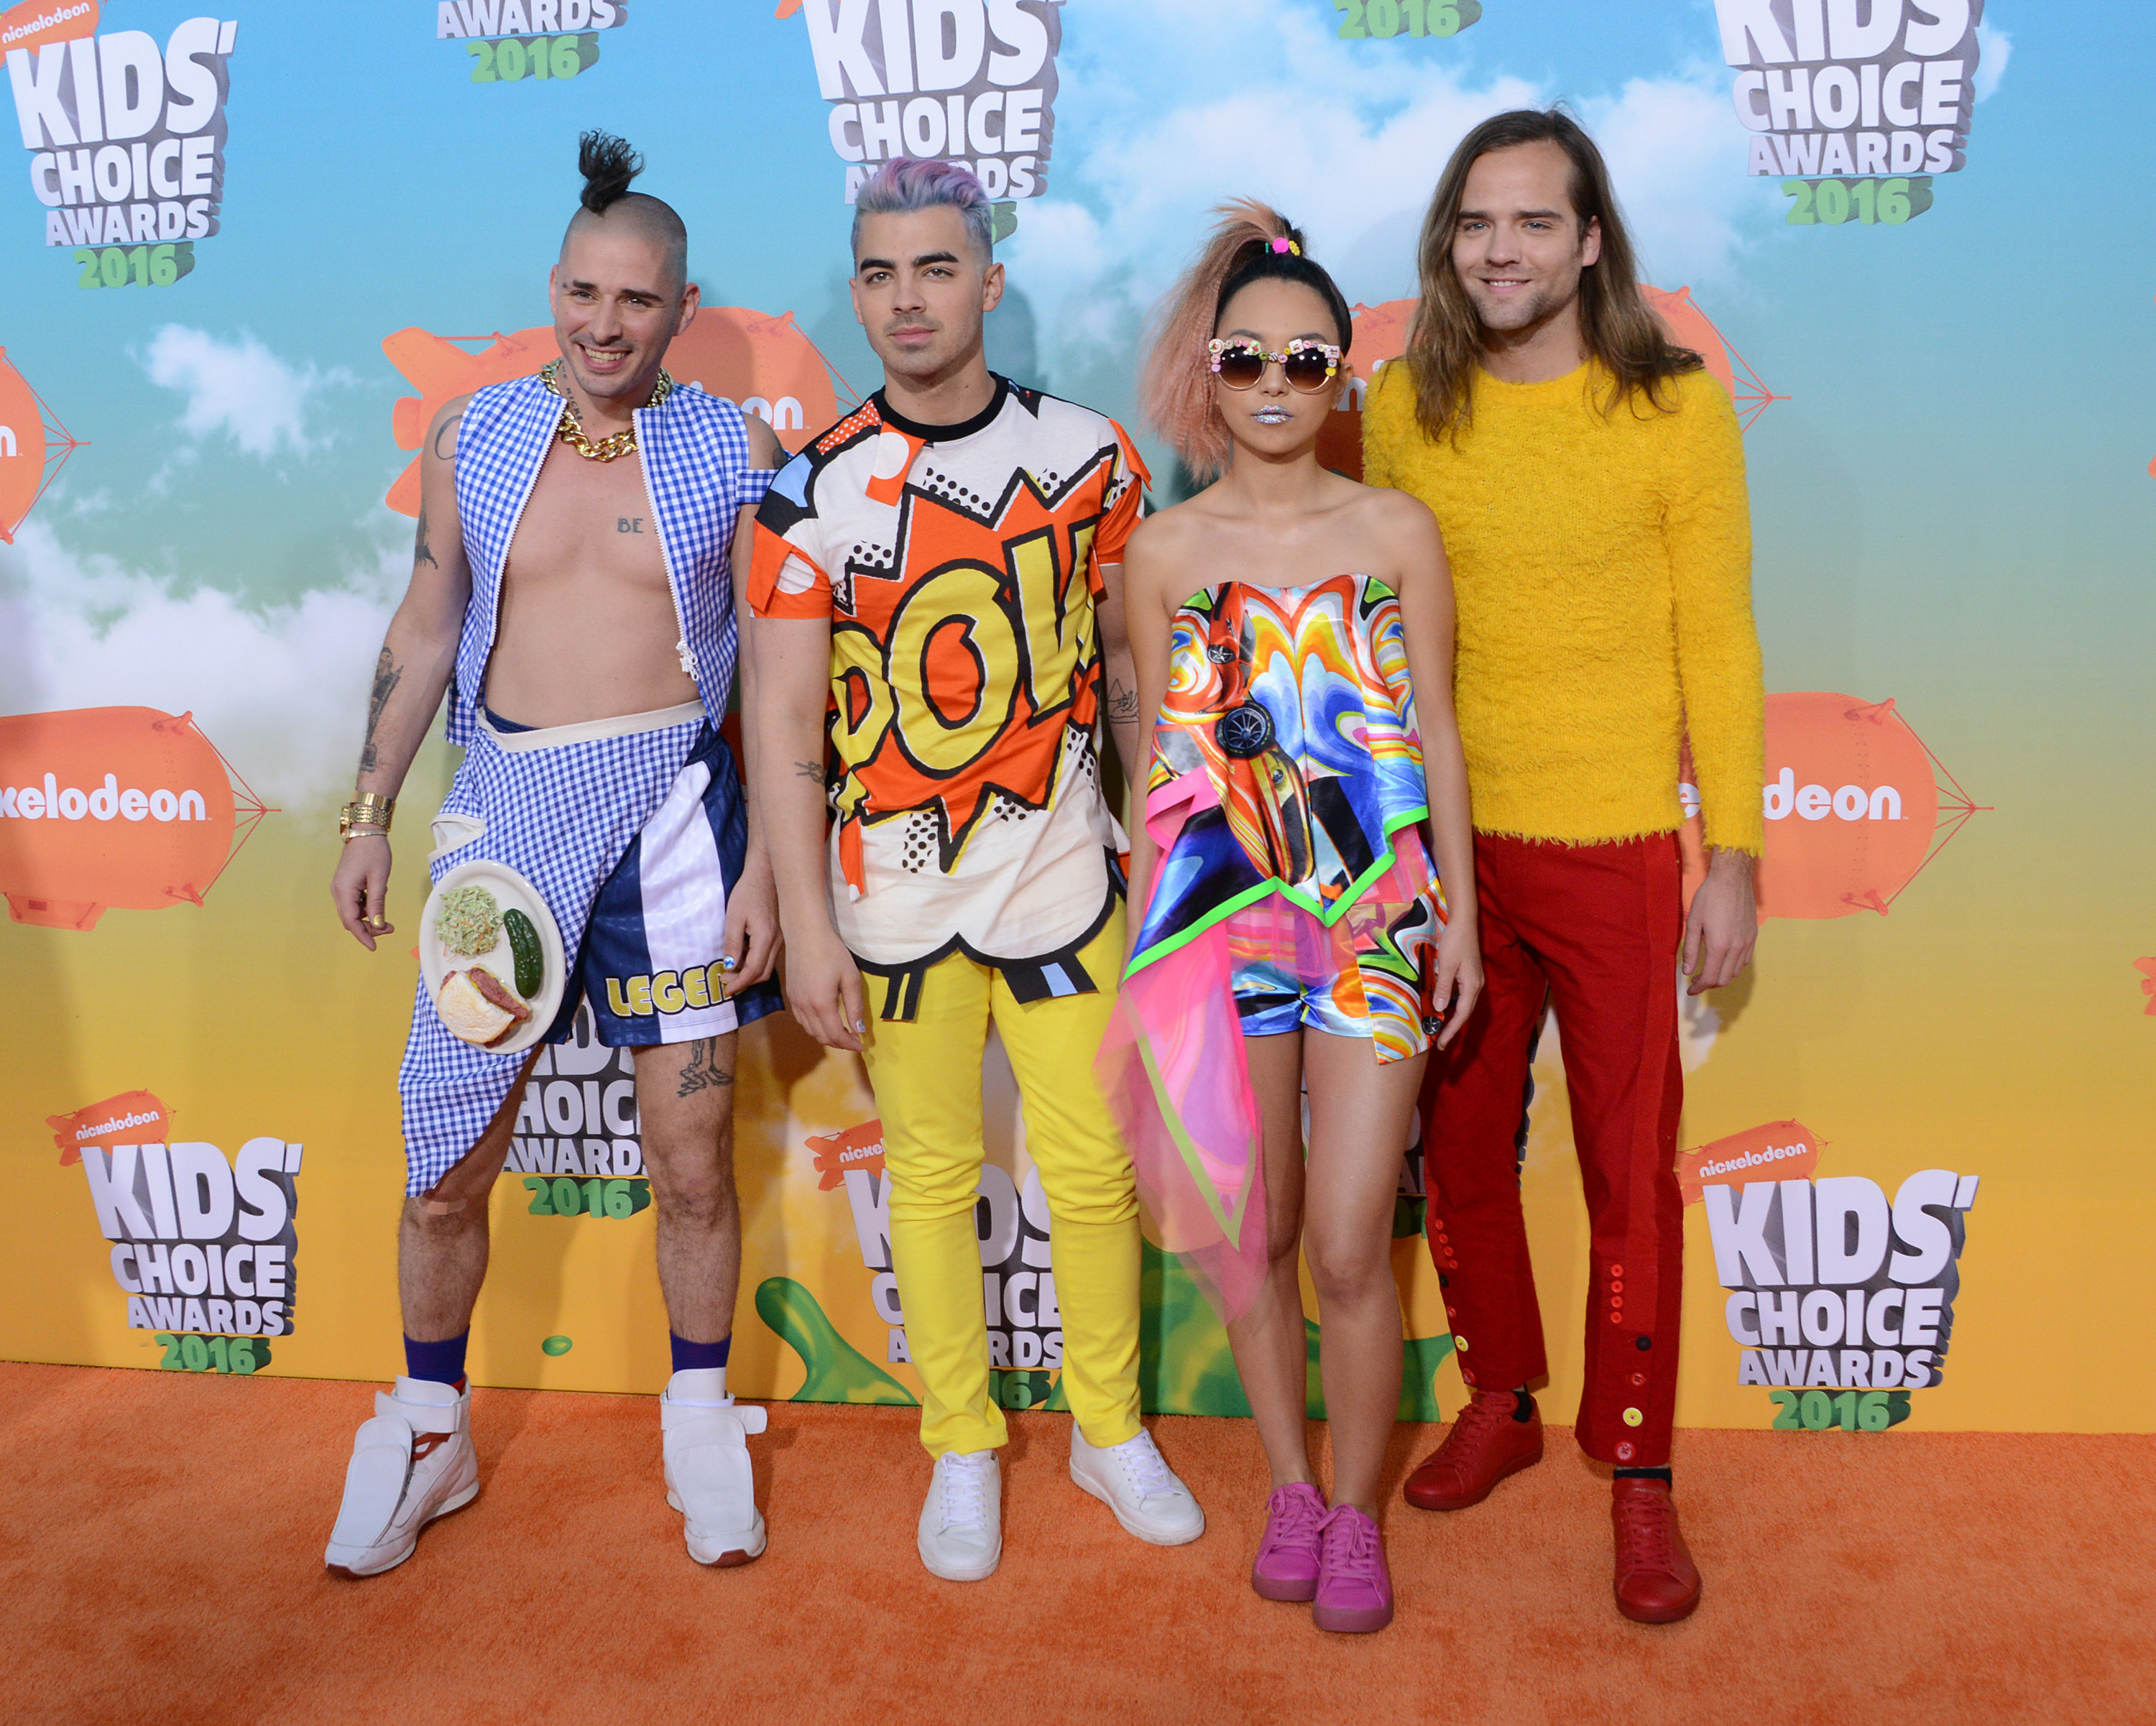 Nickelodeon's Kids' Choice Awards bring out weird, wacky red carpet looks [GALLERY]